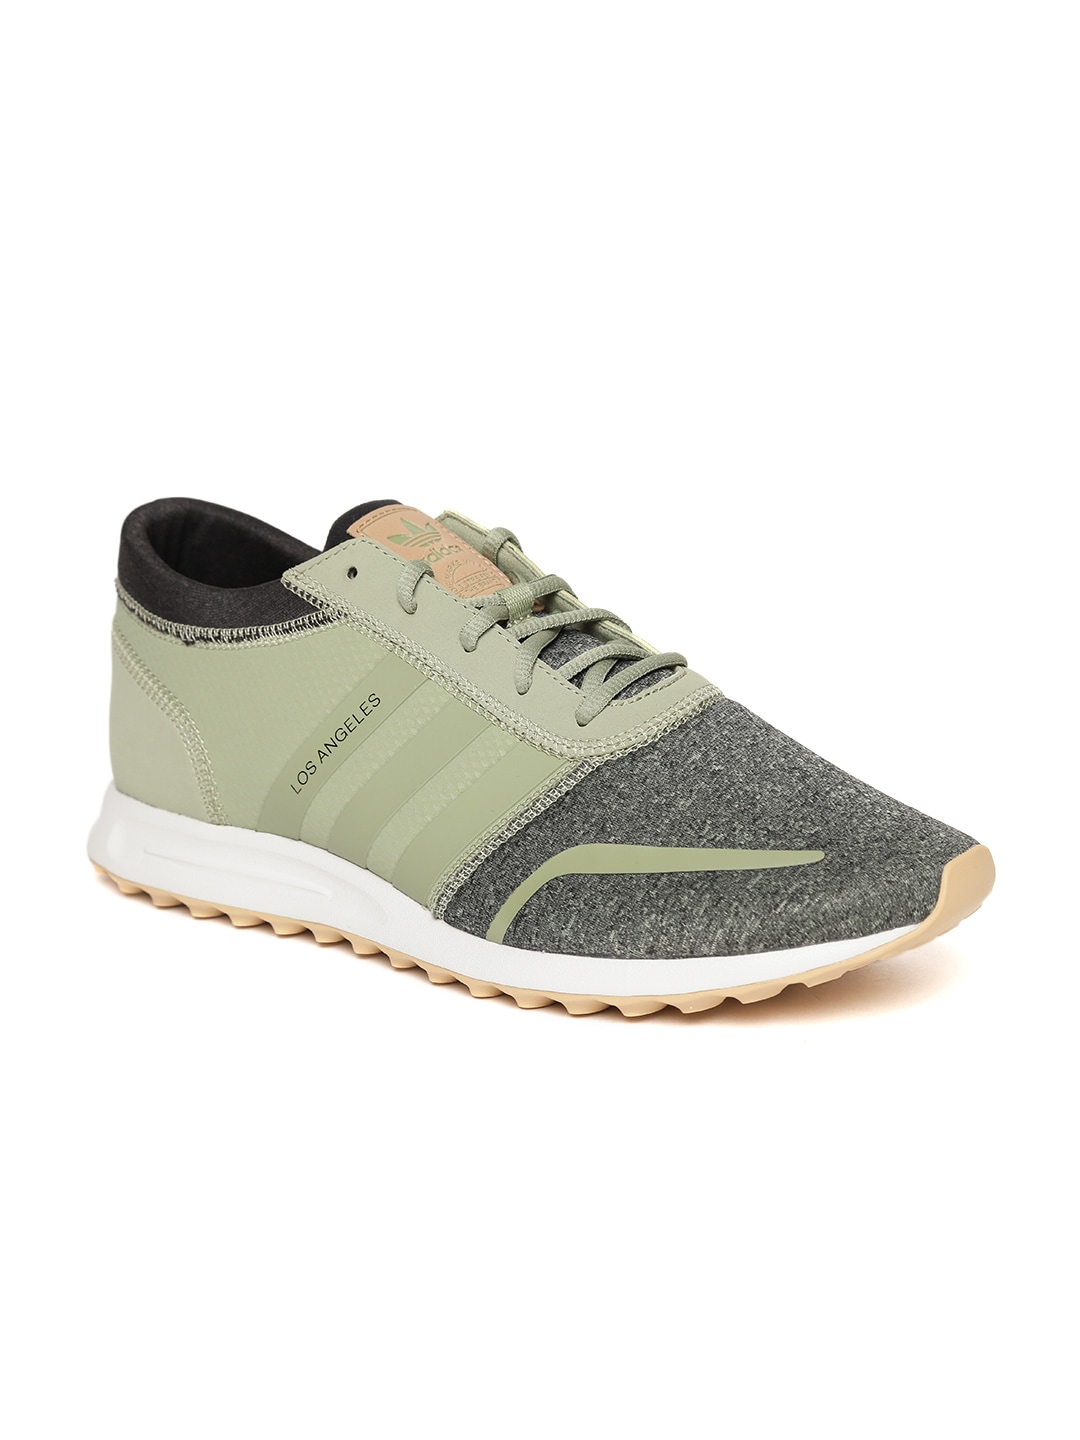 new product 52342 f733c Adidas Footwear Men Sports Shoes - Buy Adidas Footwear Men Sports Shoes  online in India